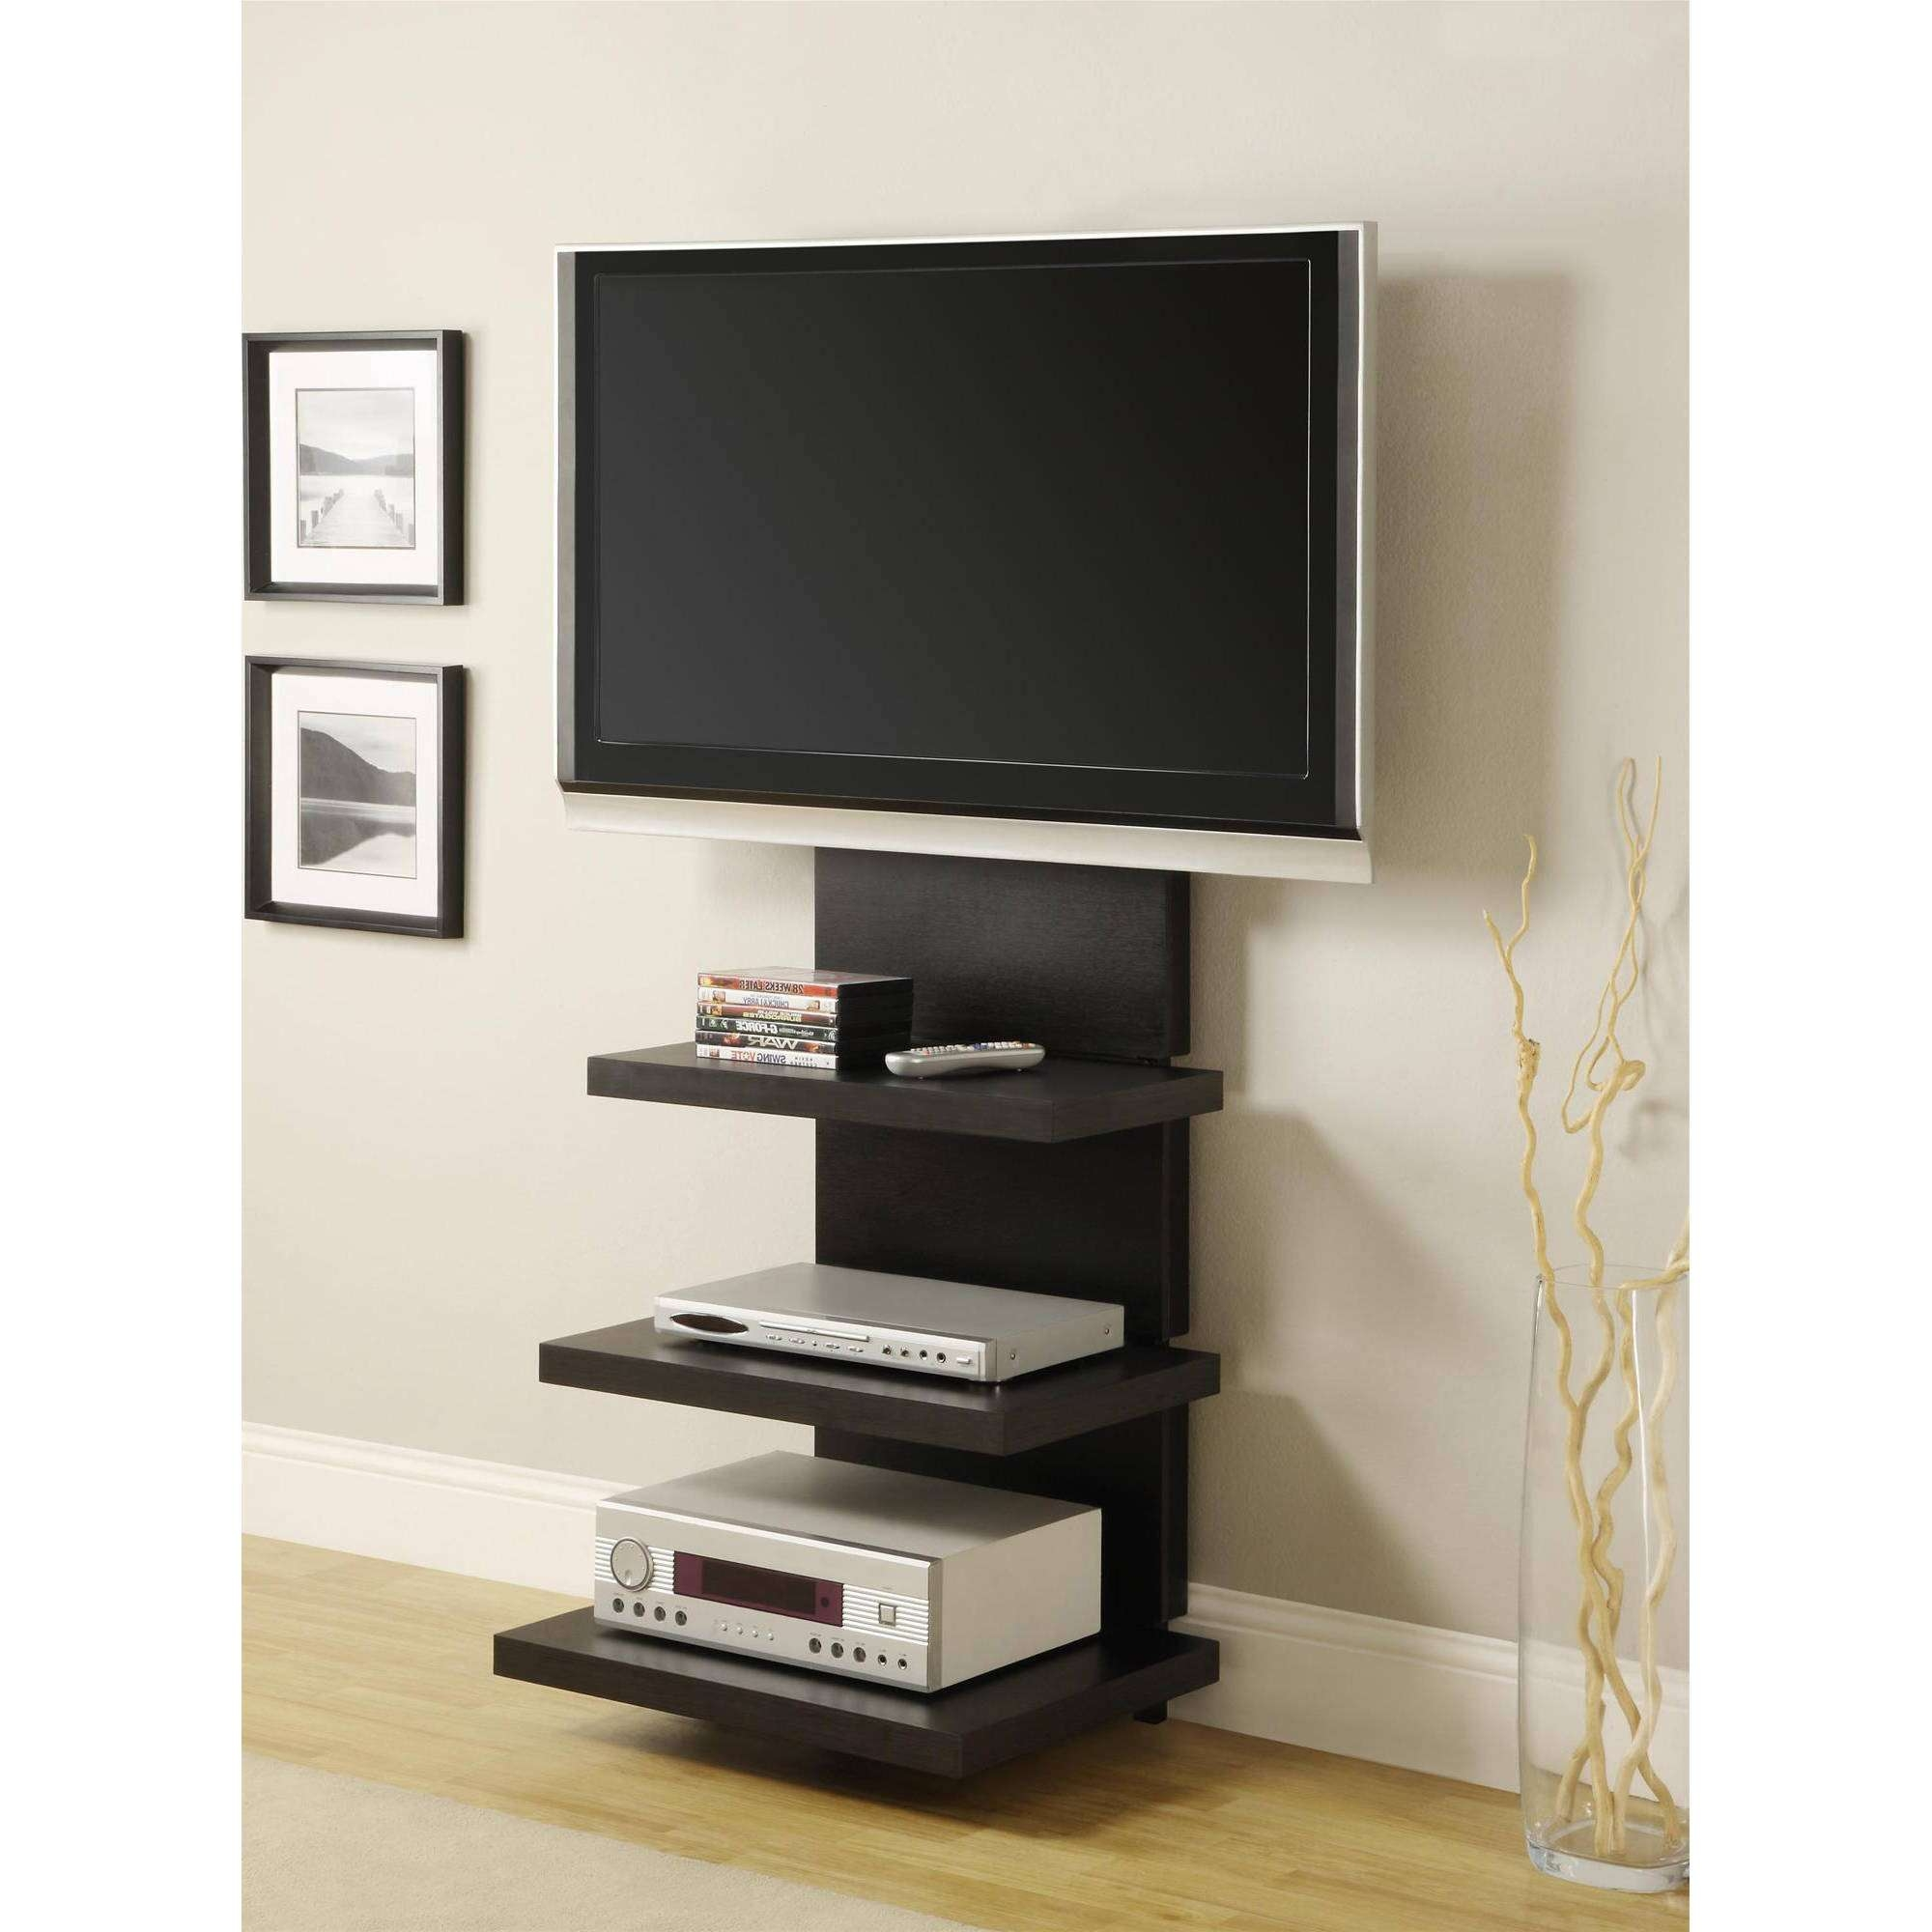 Ameriwood Home Elevation Altramount Tv Stand For Tvs Up To 60 Intended For Very Tall Tv Stands (View 4 of 15)